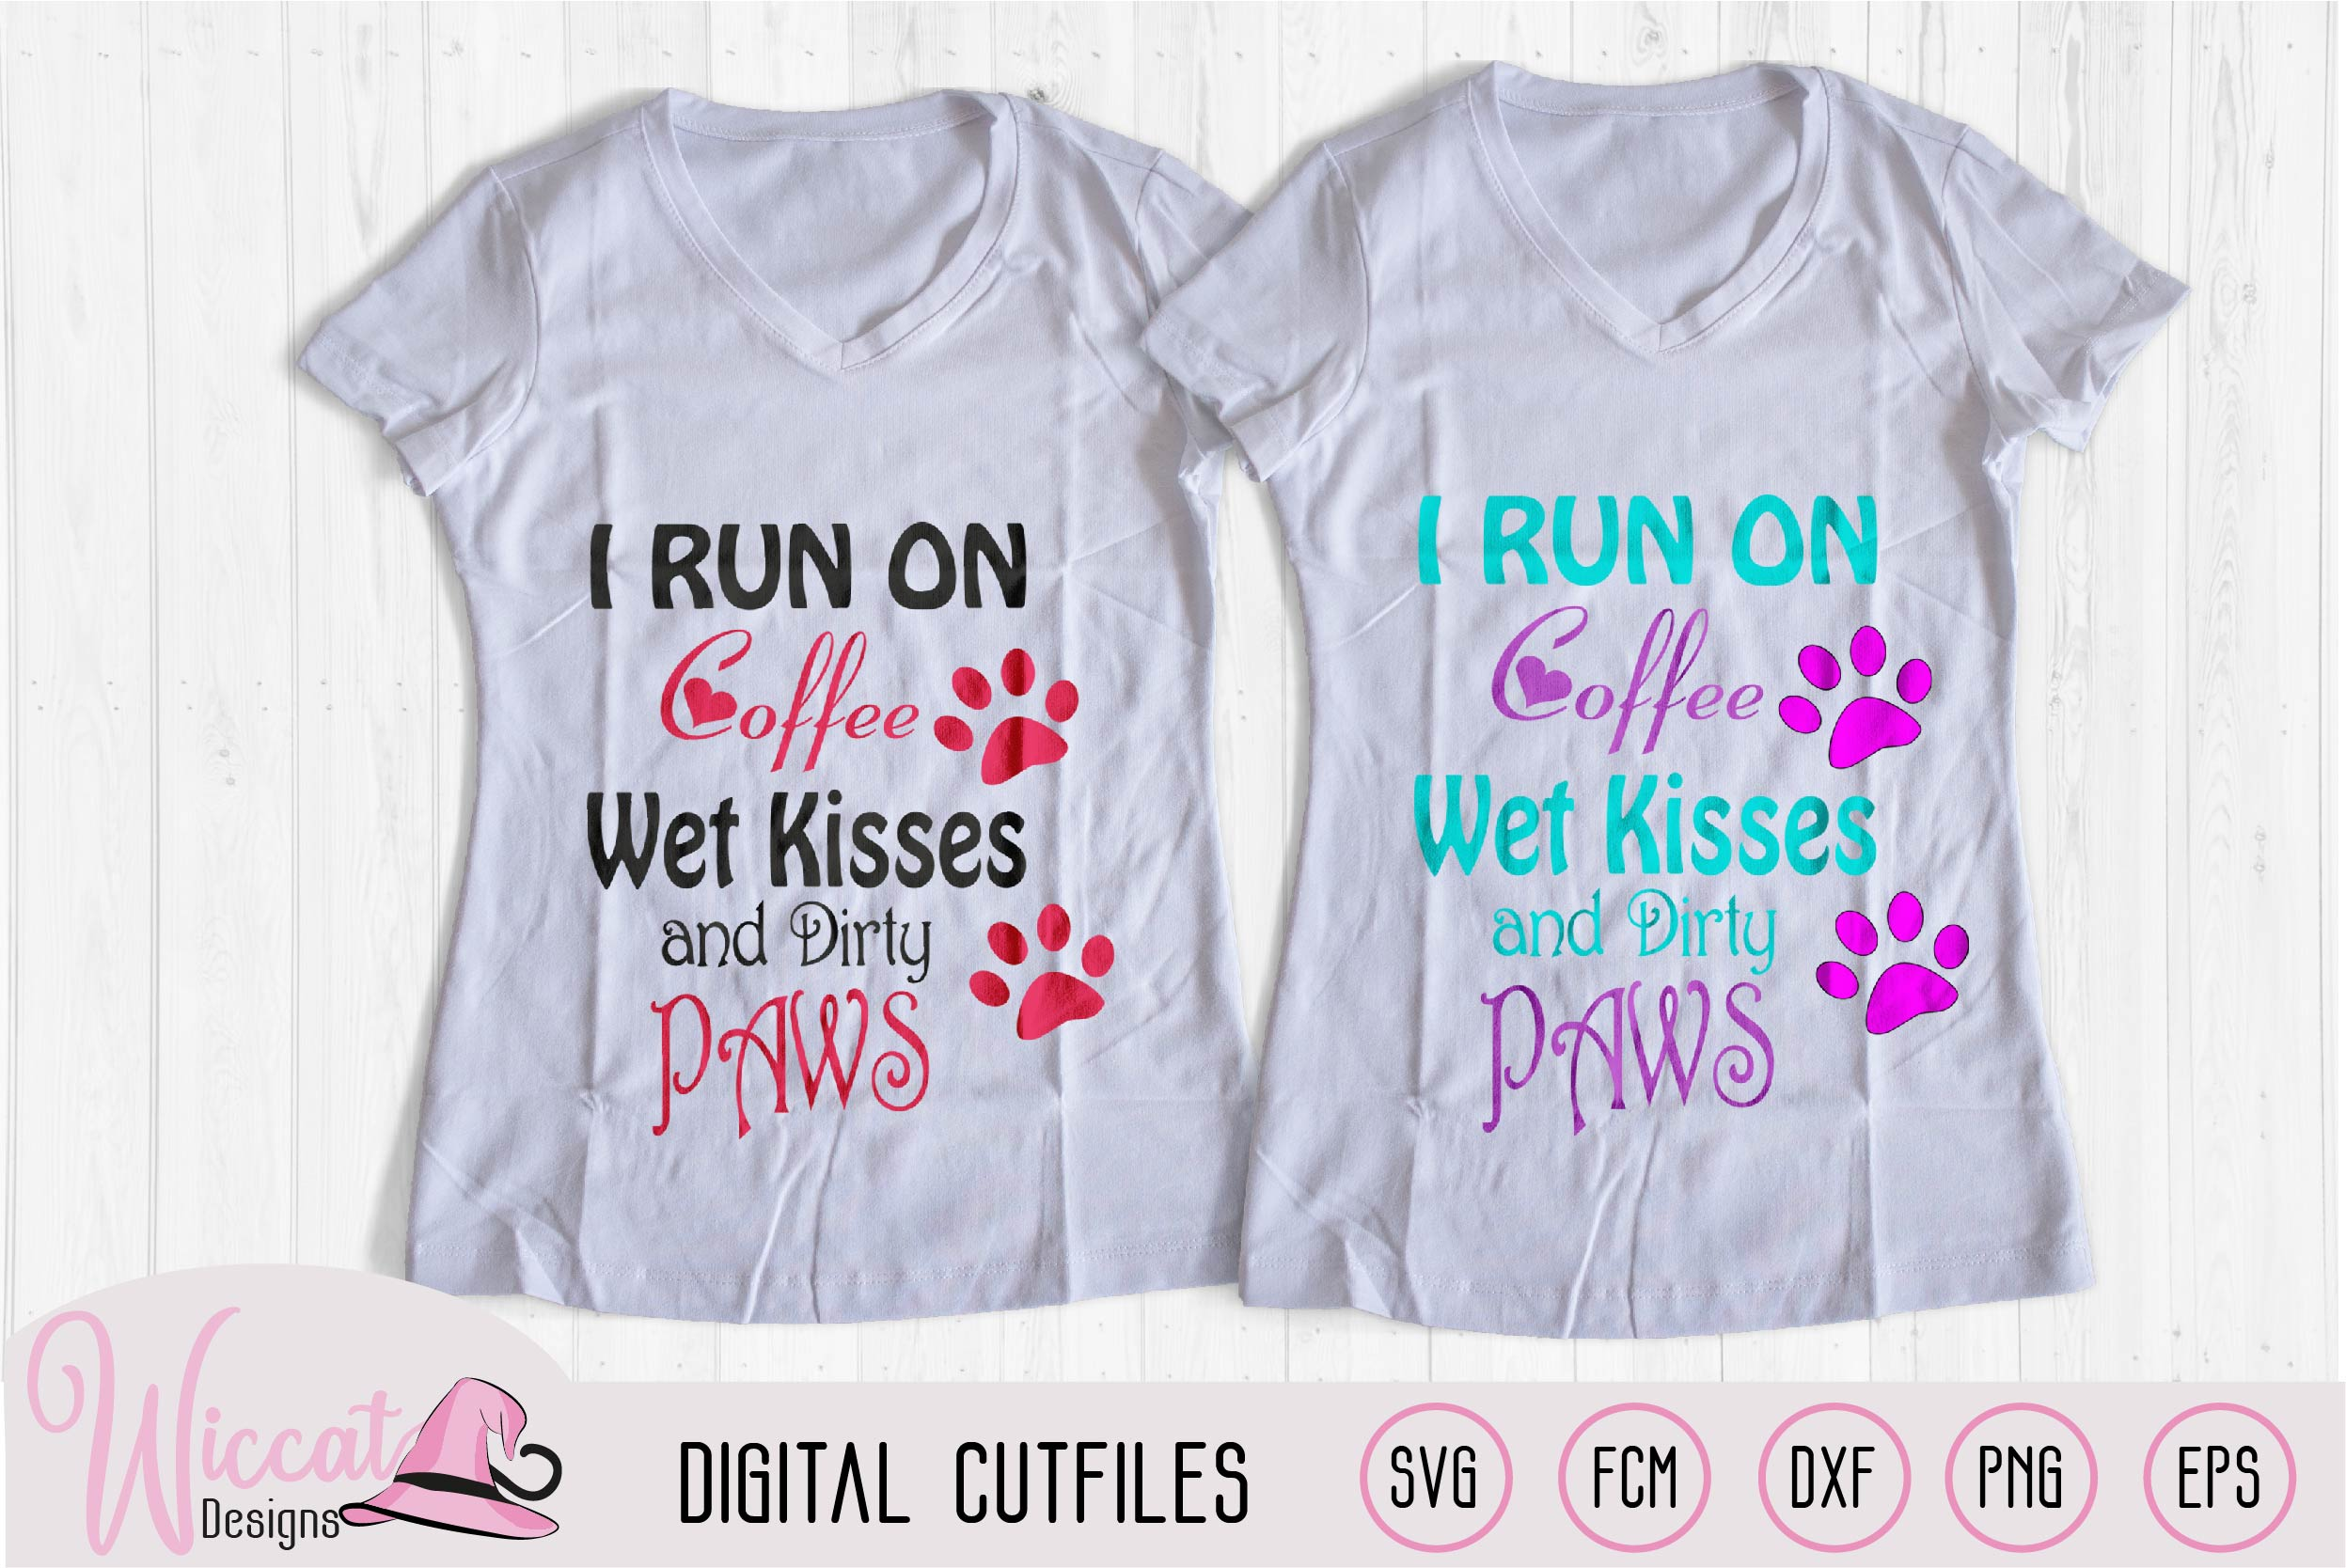 Dog love and Coffee quote svg, I run on coffee svg, wet kis example image 2